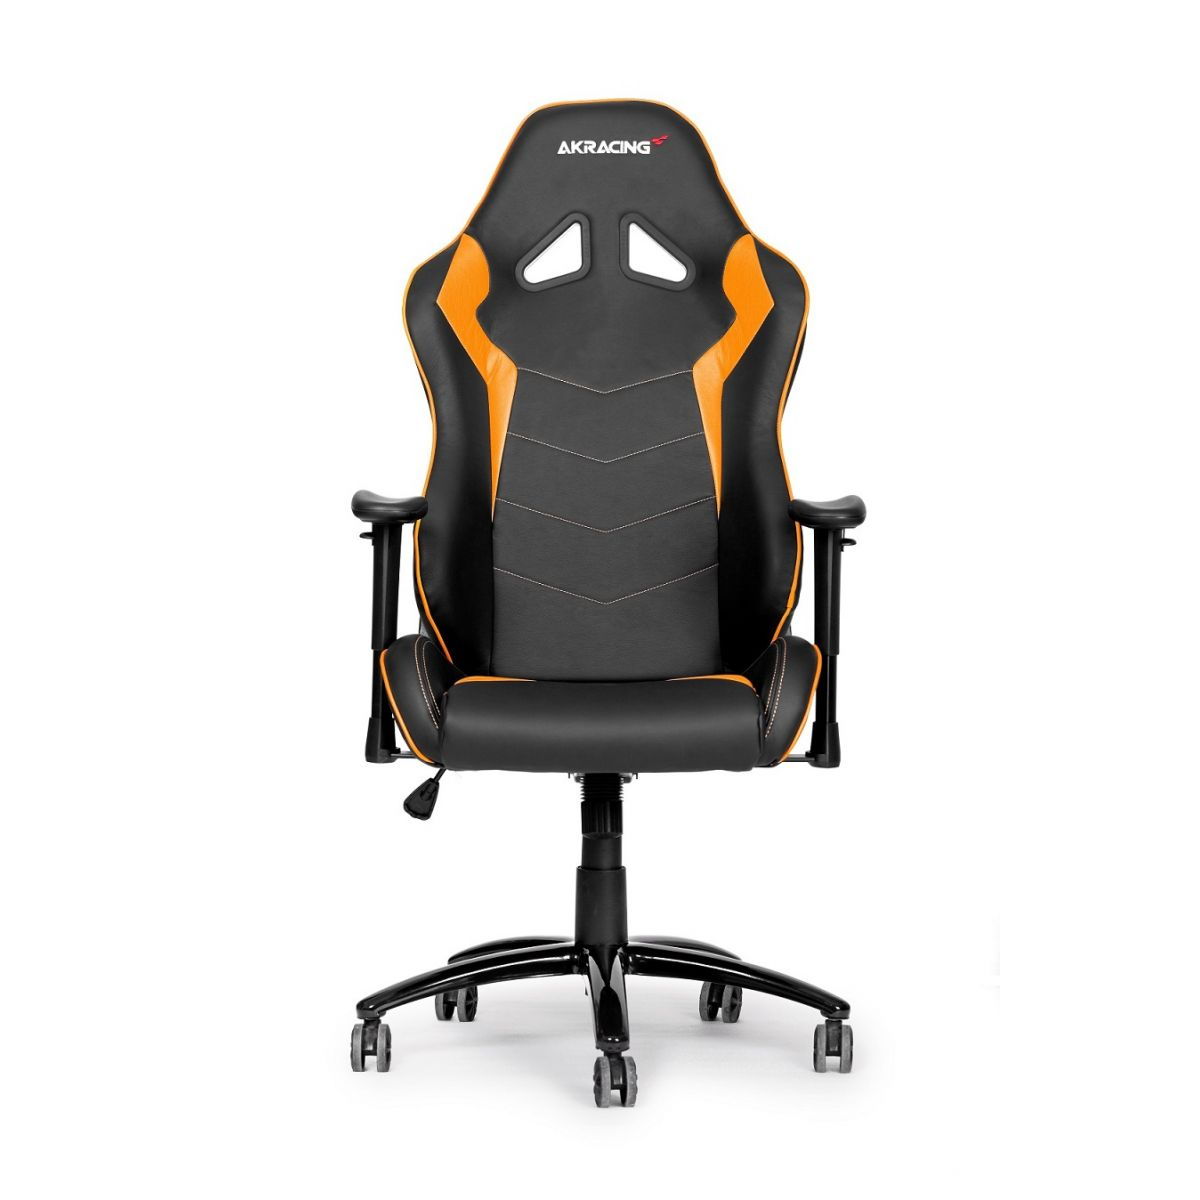 Cadeira AKRacing Octane Gaming Orange AK-OCTANE-OR - AKRacing